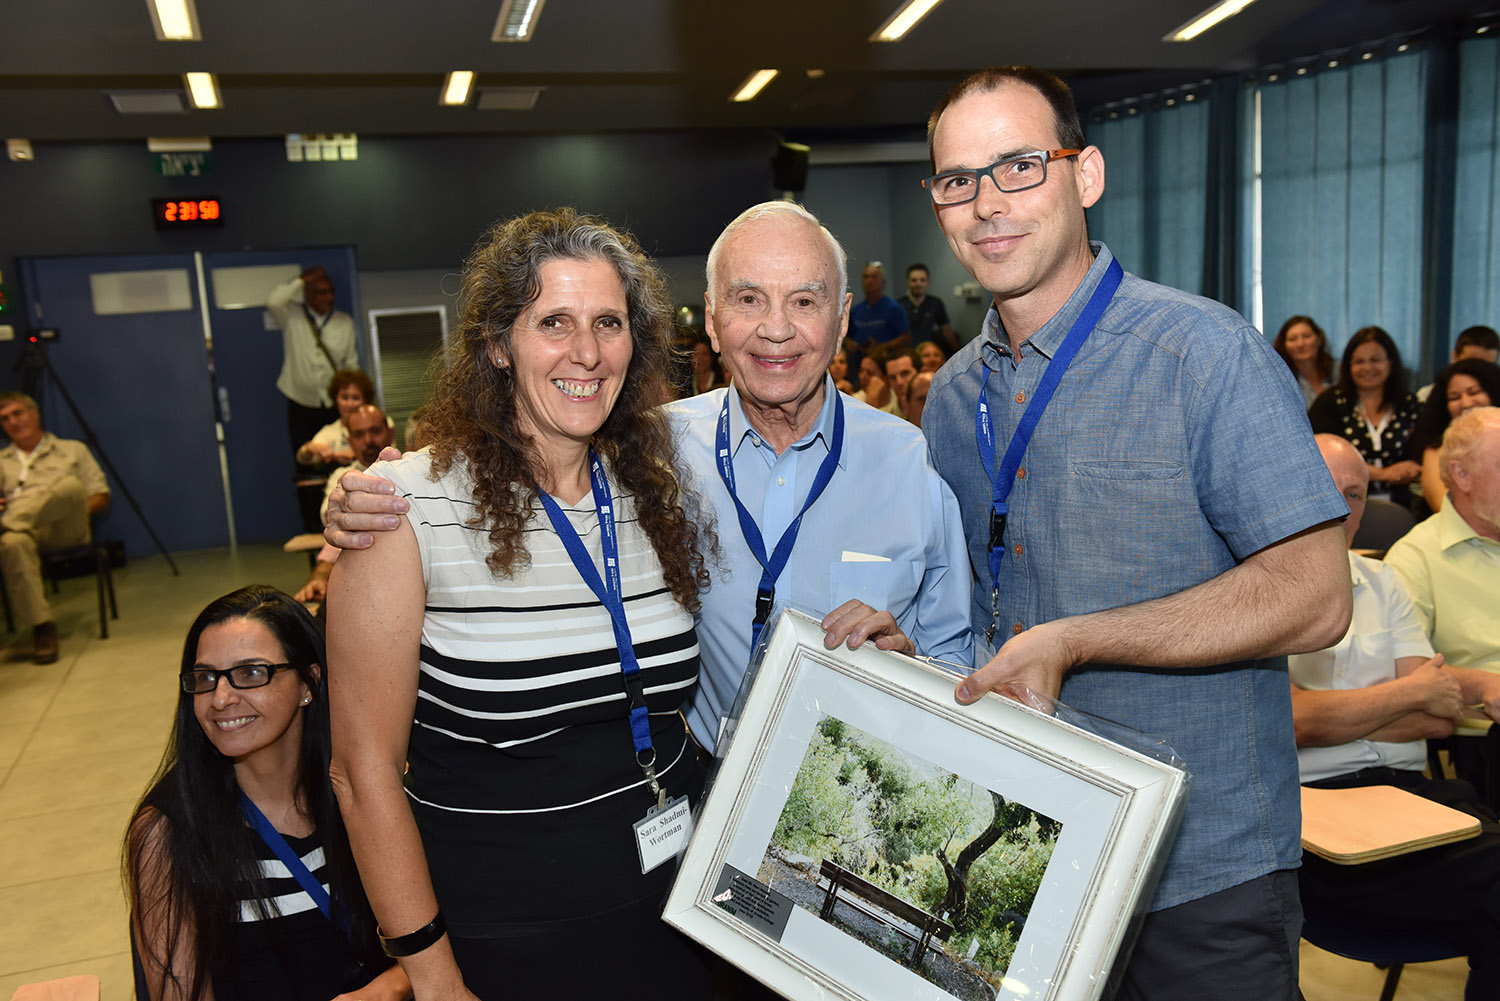 Morton Mandel receives Yakir Oranim Award